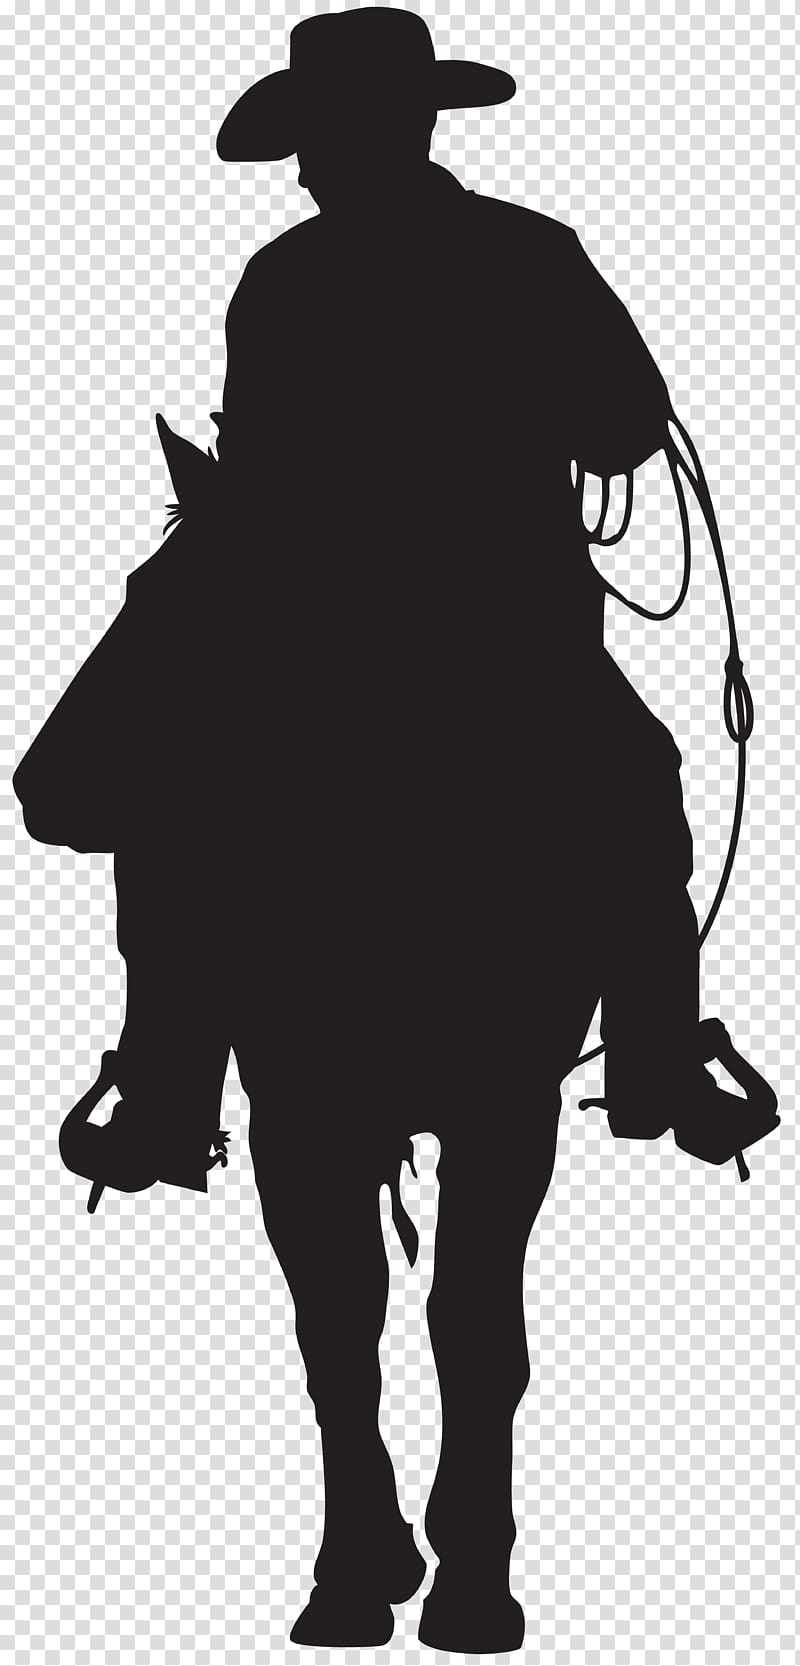 Silhouette of person ride on horse, Silhouette Cowboy.